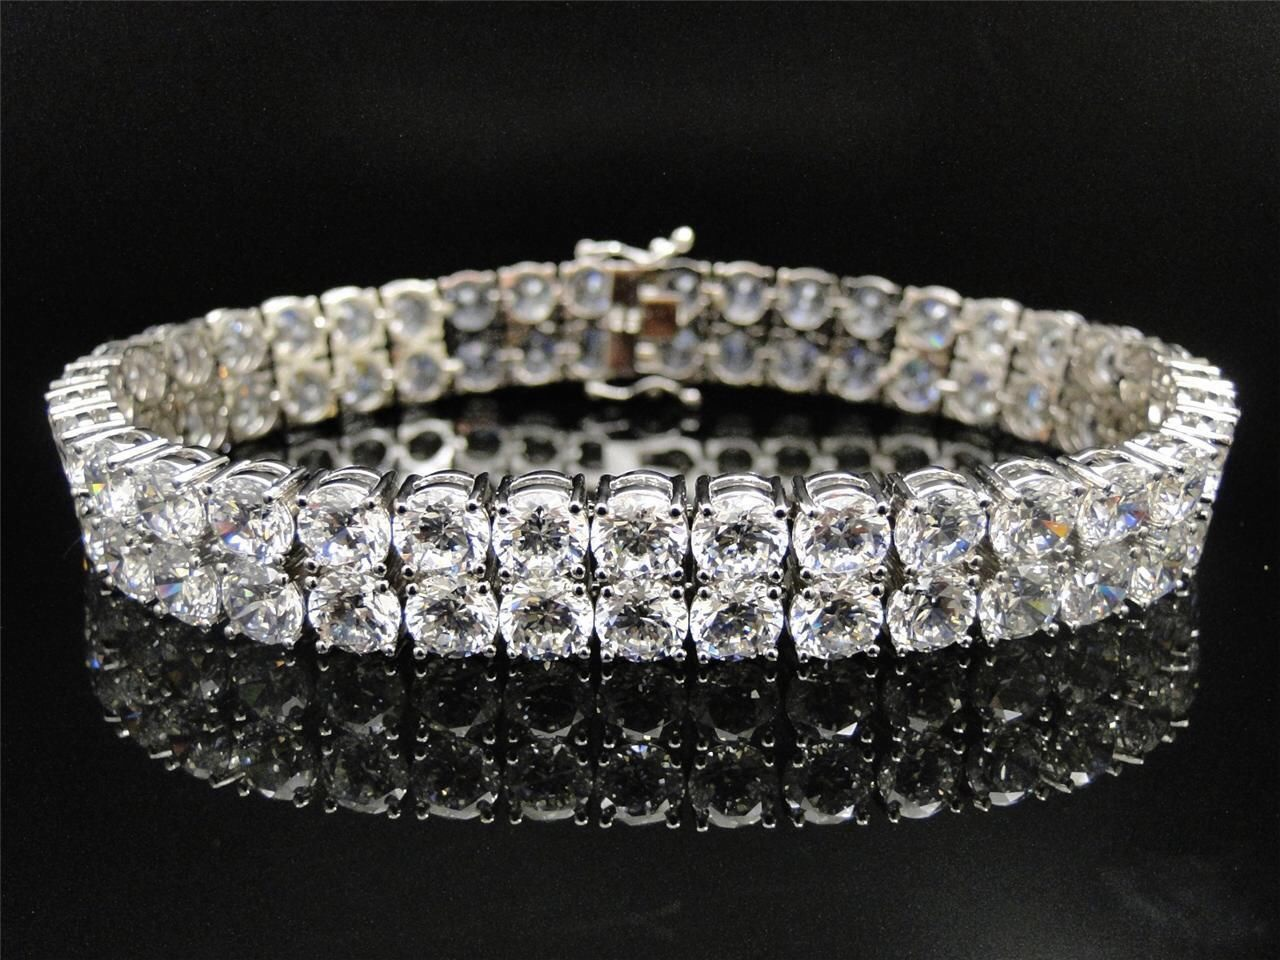 bracelet diamond ic qitok ru ben pagespeed sterling product silver jewellers moss sjlpzxh